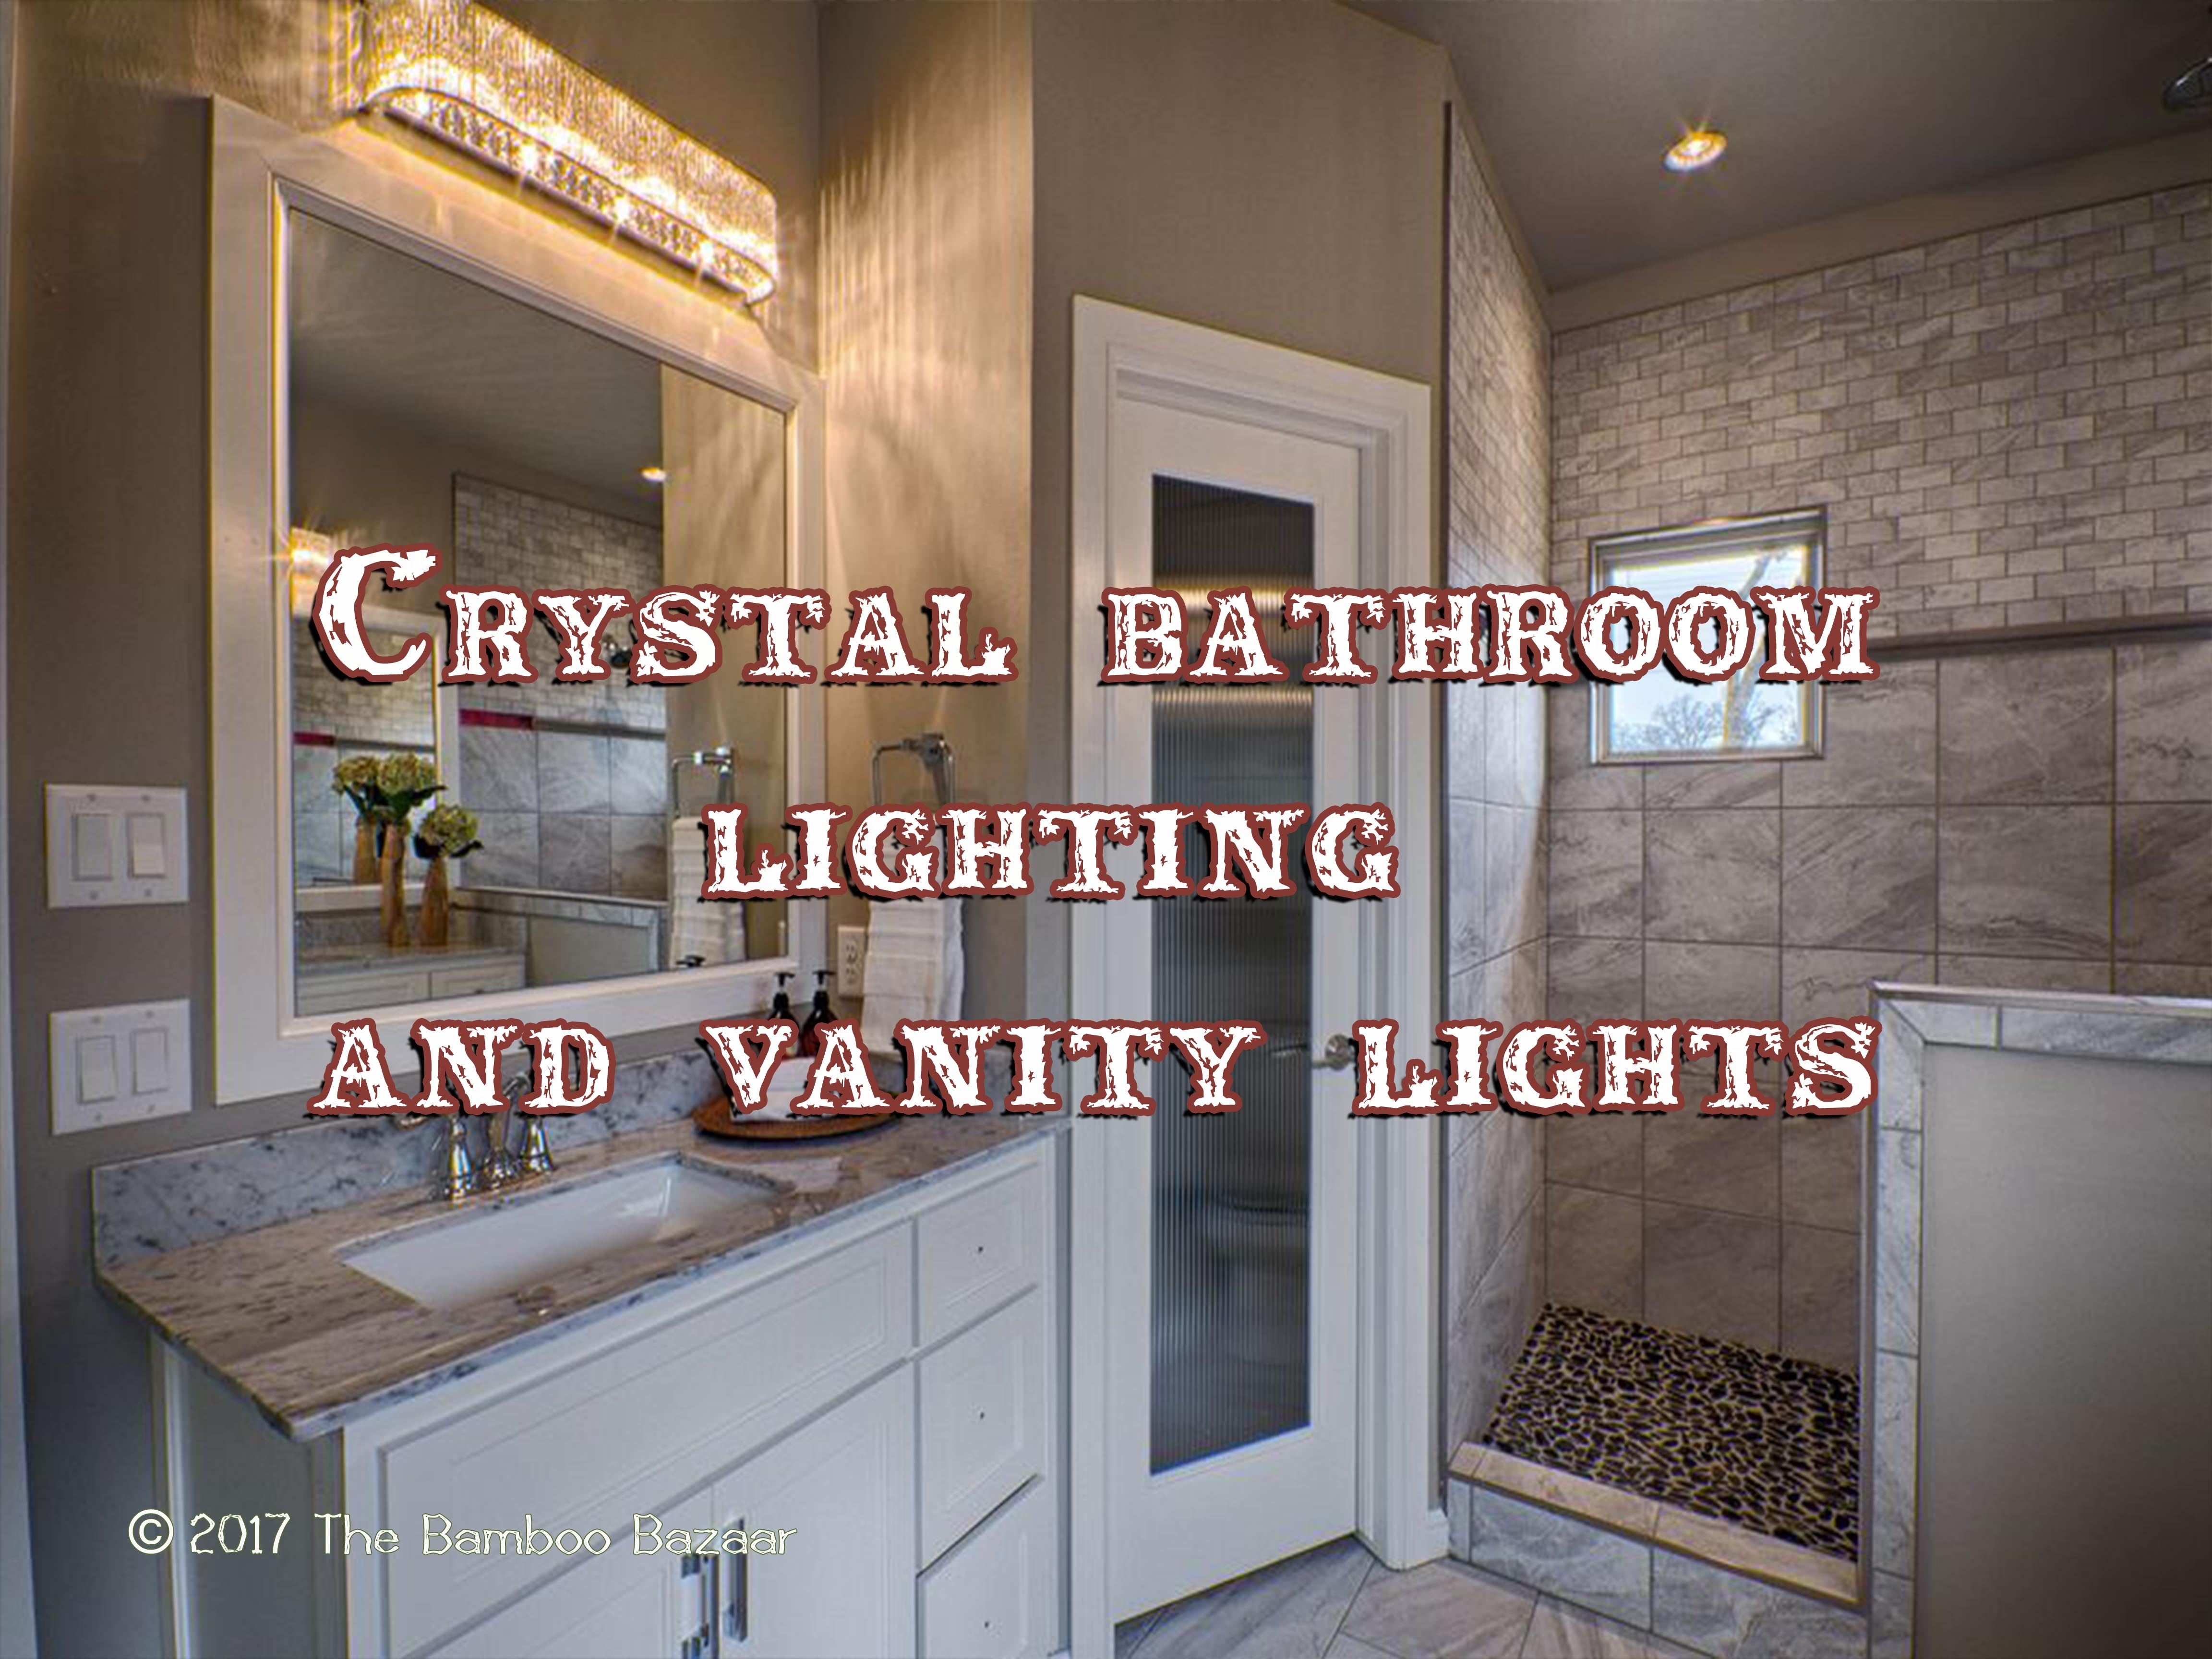 Crystal Bathroom Lighting Vanity Lights A Guide To The Best Of - Bathroom vanity lights with shades